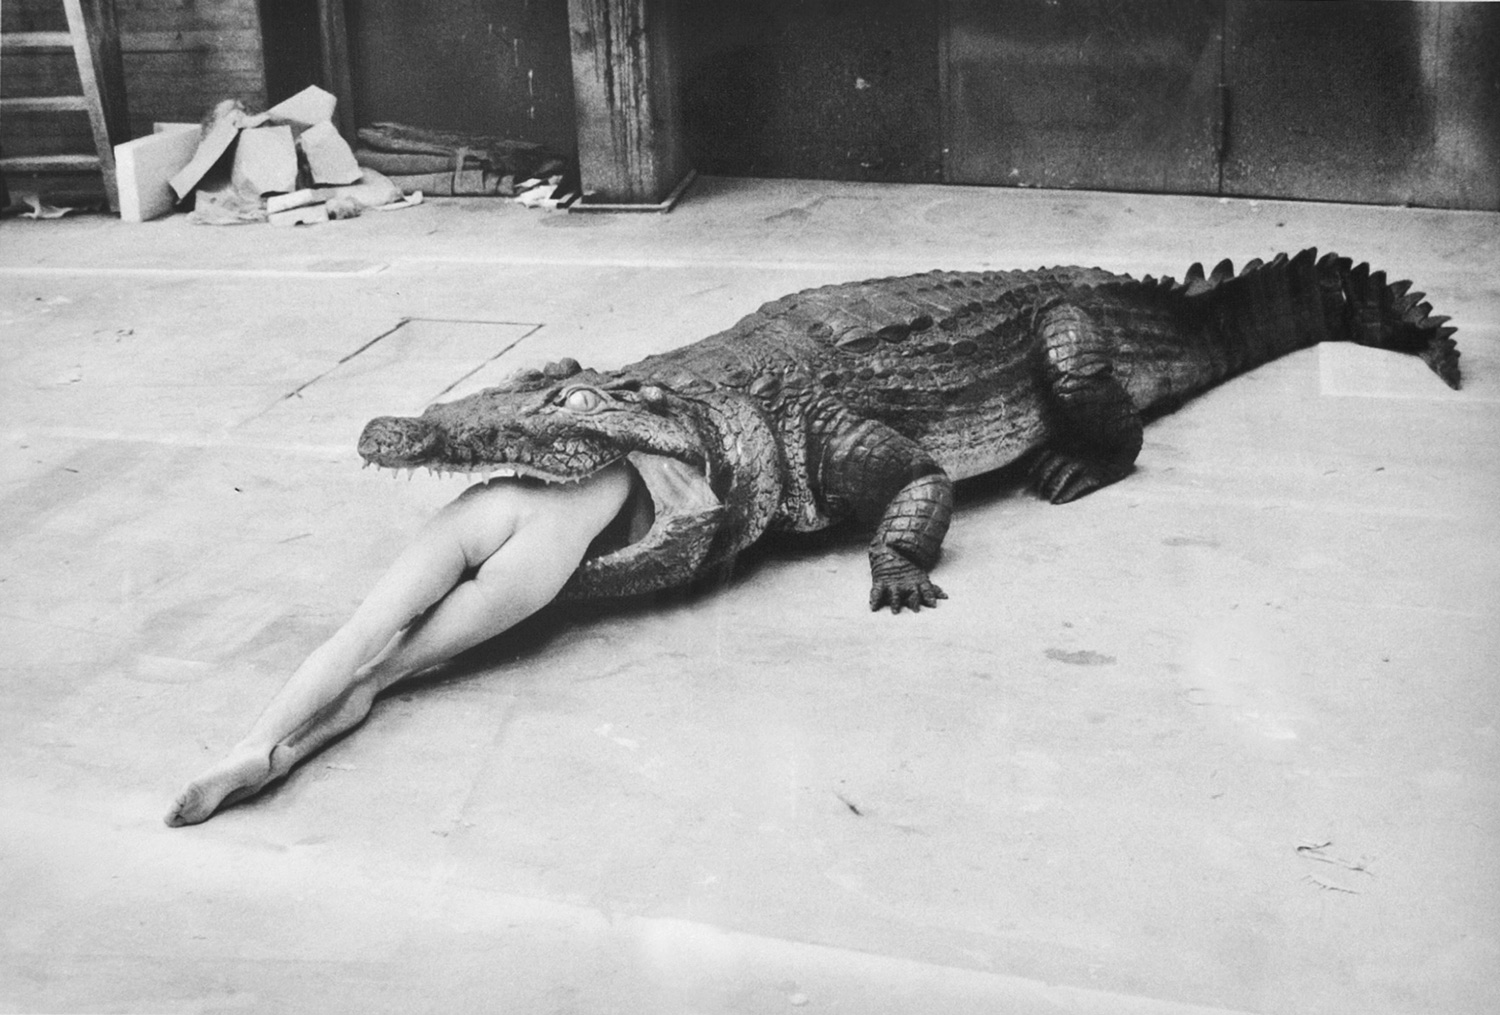 Helmut Newton   The Legend of Virginity, A Scene from Pina Bausch's Ballet, Wuppertal   1983   9 x 13 inches (22.9 x 33 cm)   platinum palladium print   signed lower right verso